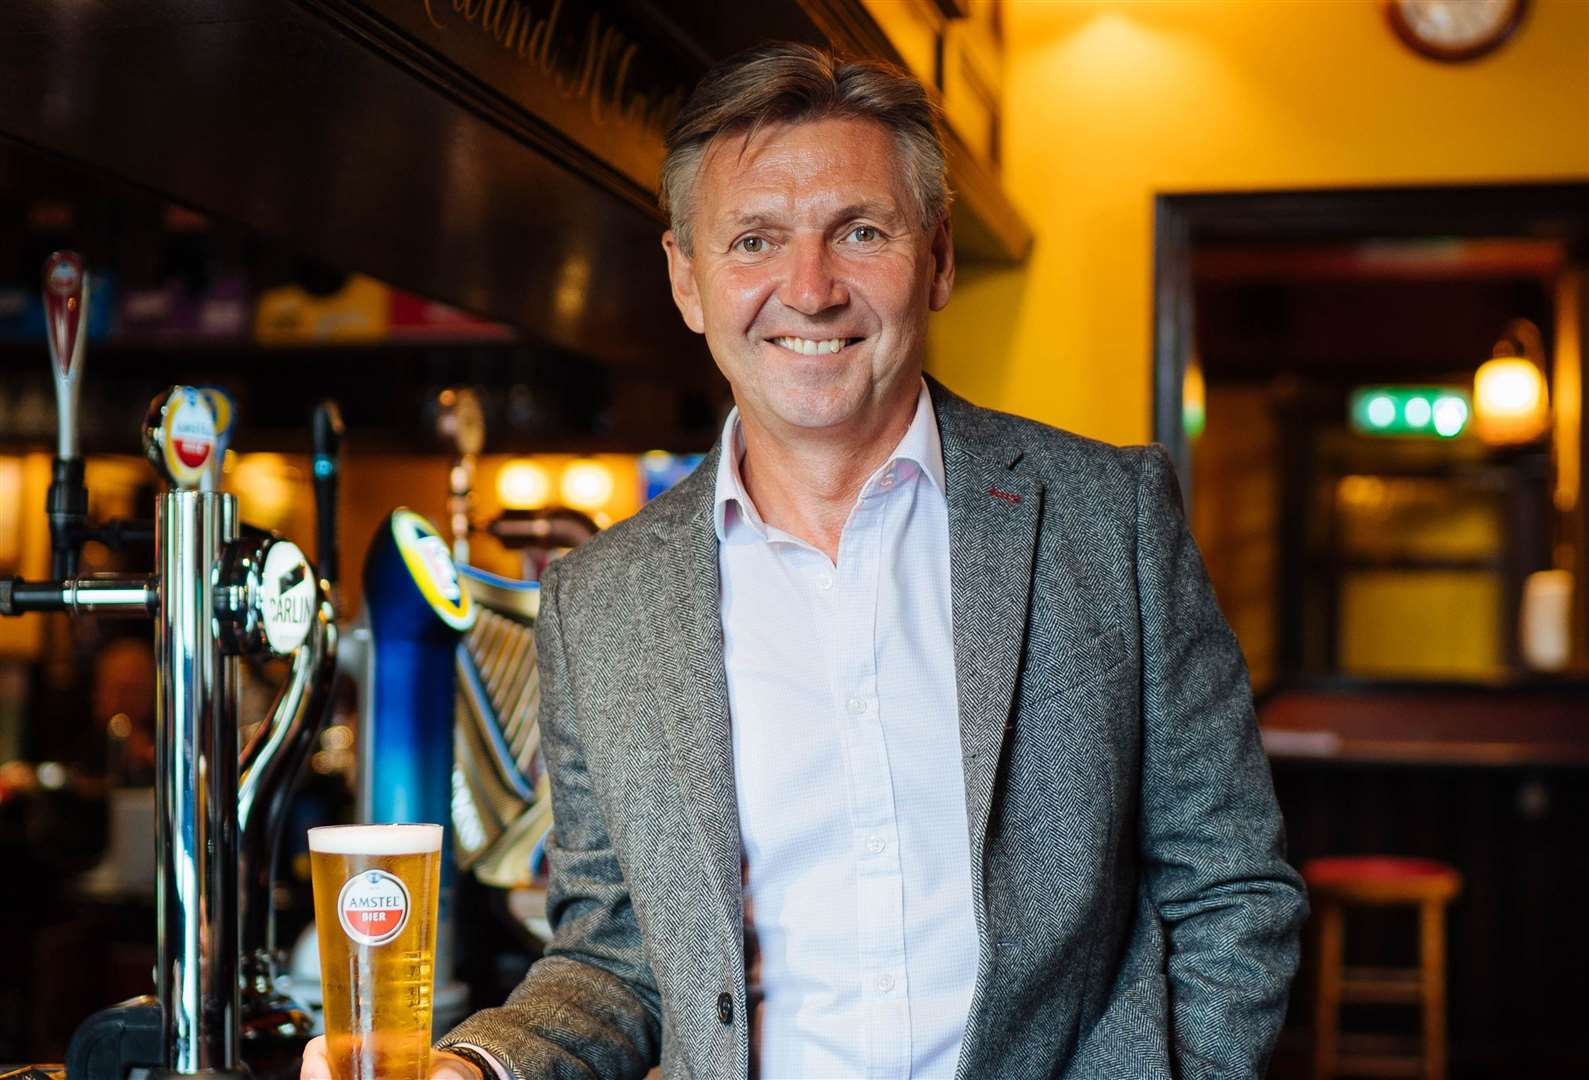 Philip Thorley runs Thorley Taverns